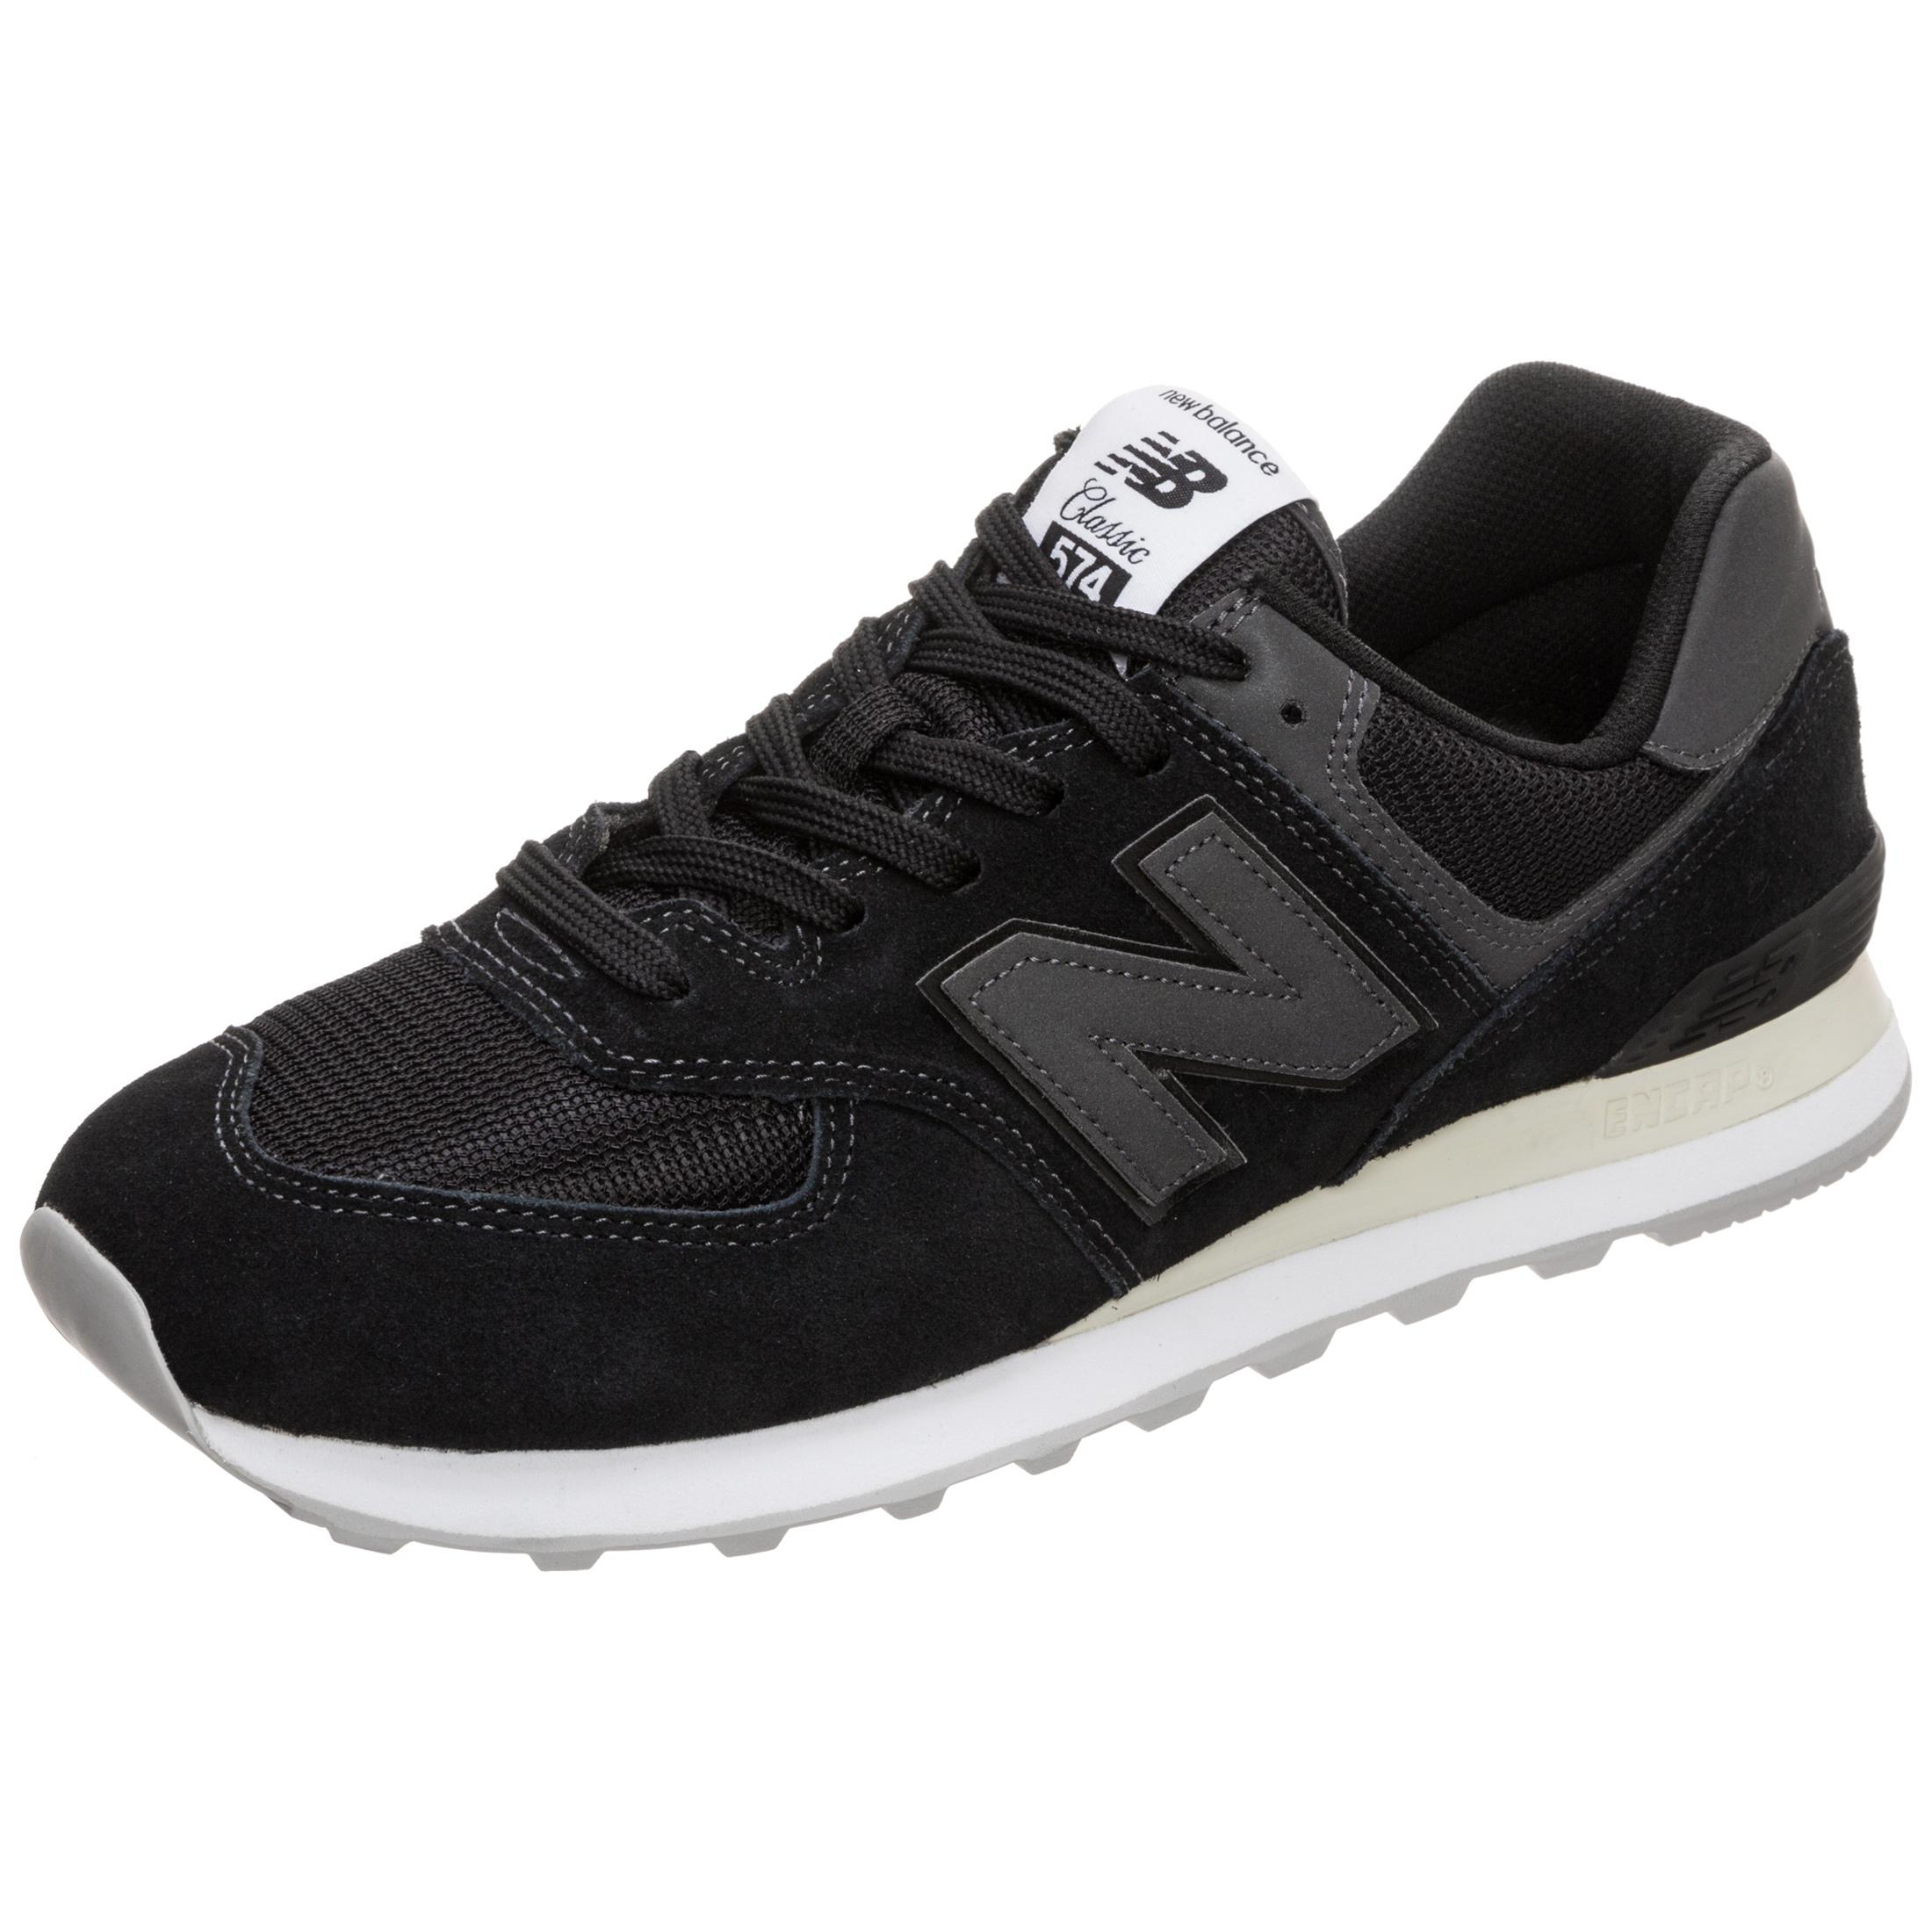 new balance 574 damen bewertung